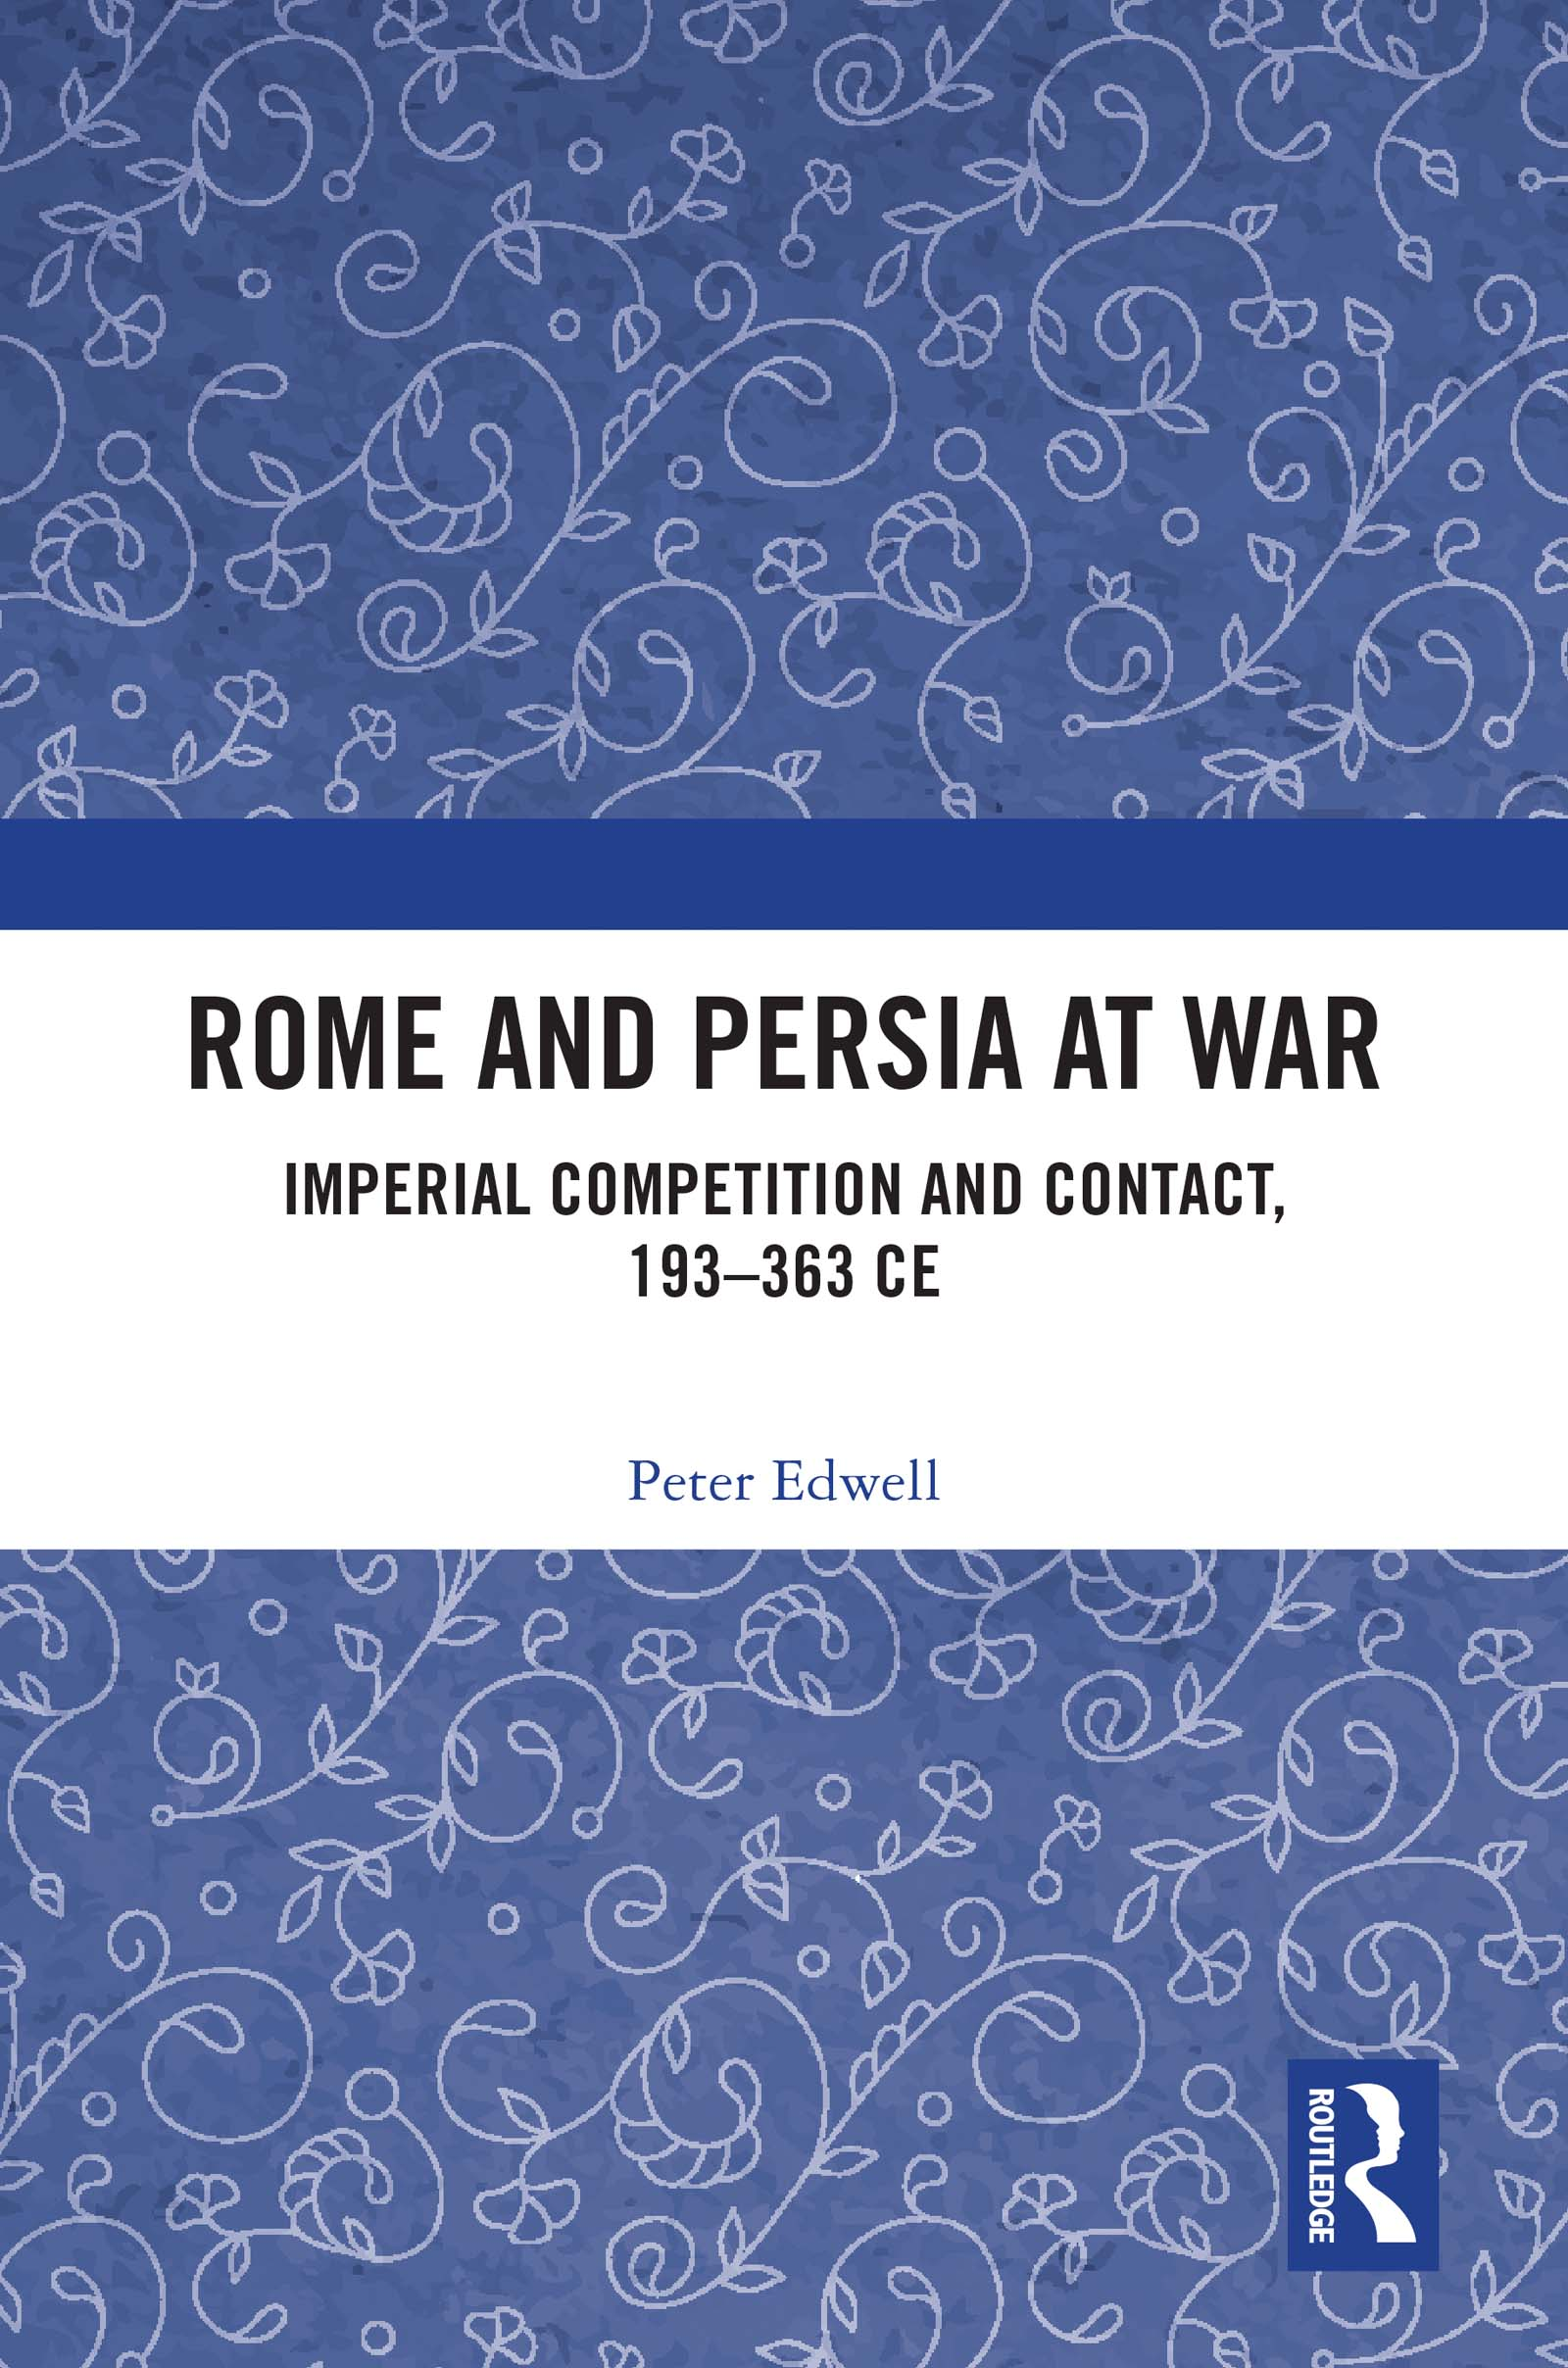 Conflict and diplomacy between Rome and Persia under Constantius II and Shapur II